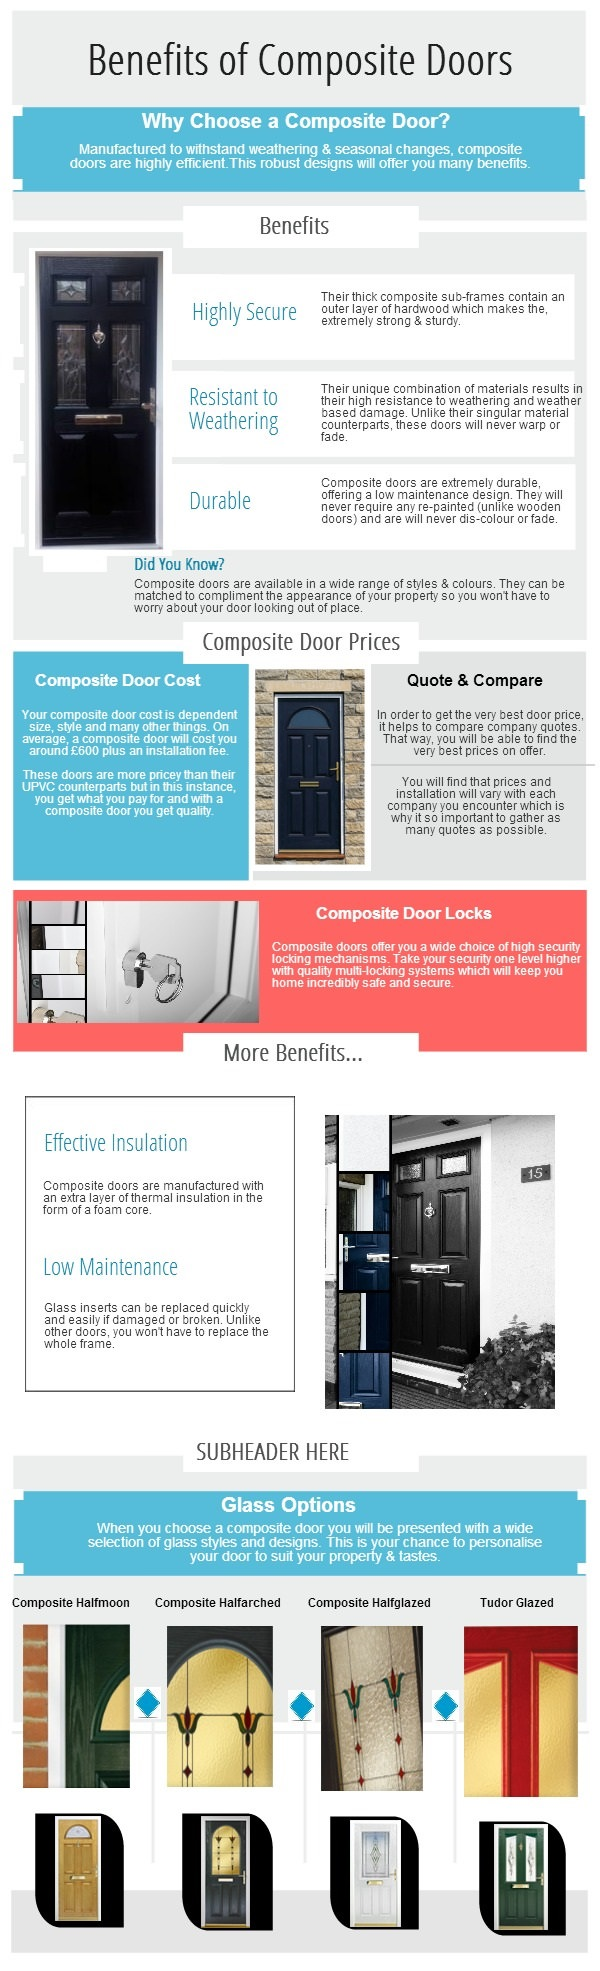 Composite Door Benefits